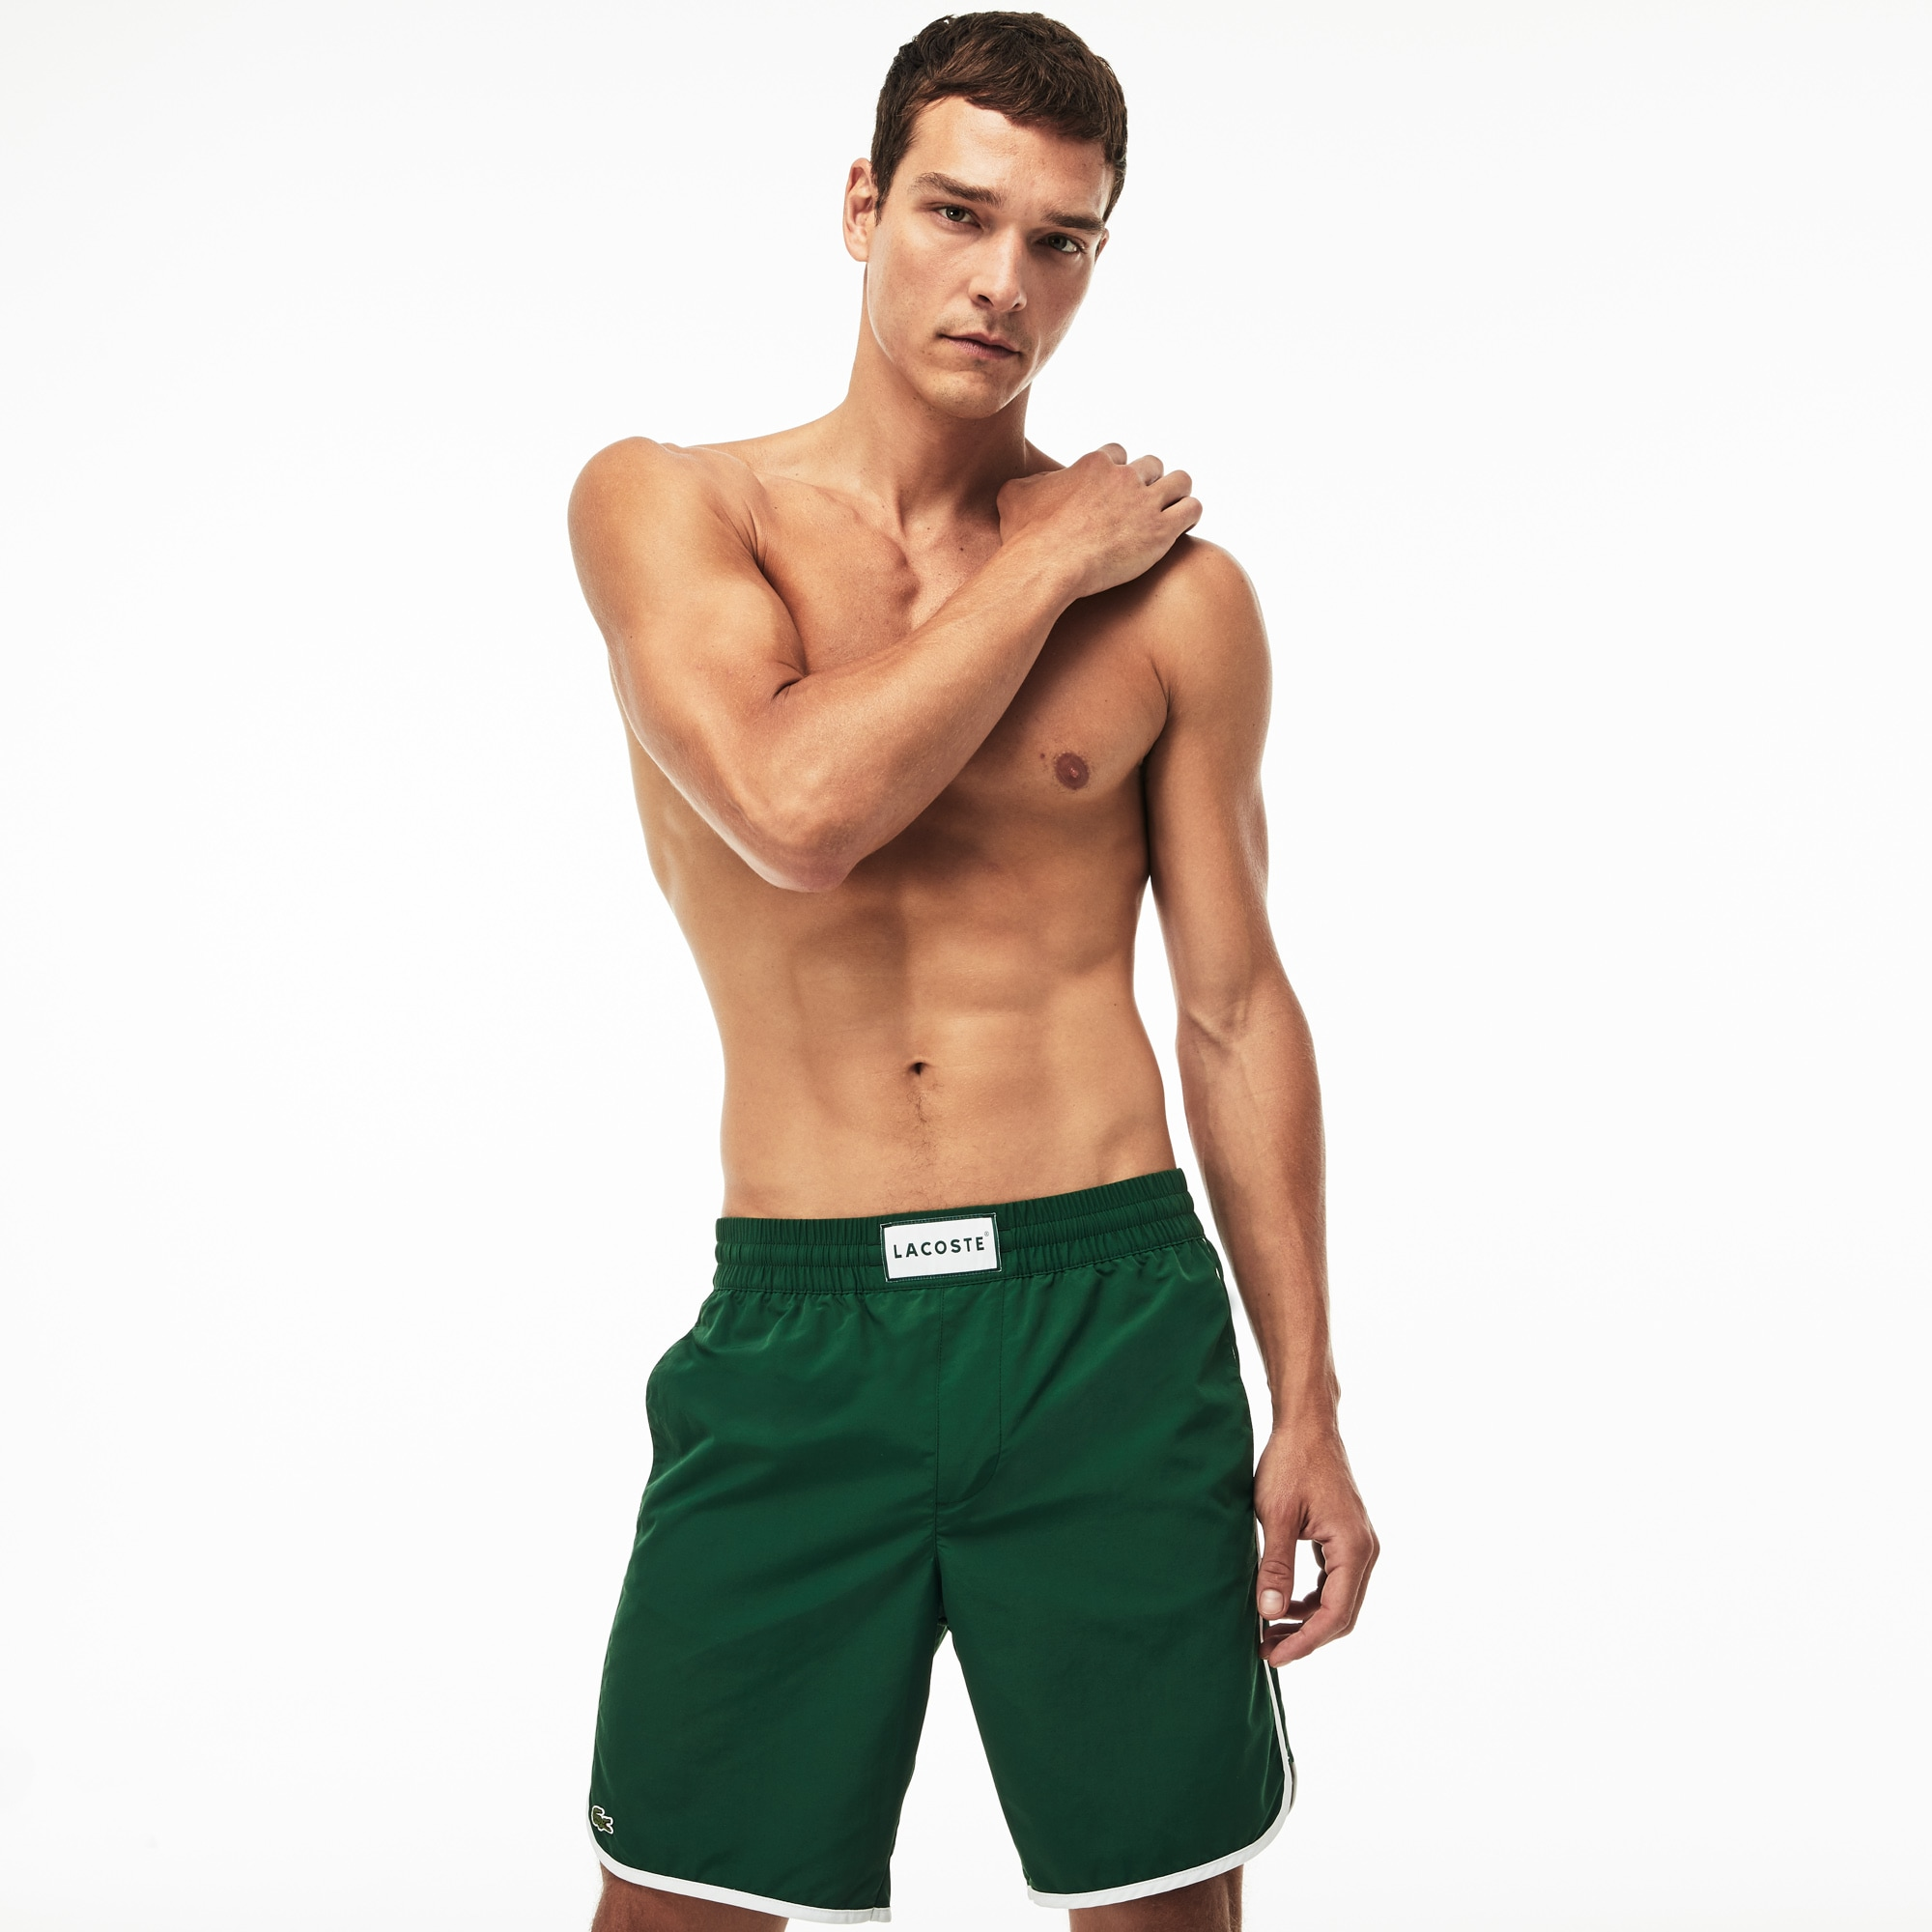 Men's Longboard Swimming Trunks